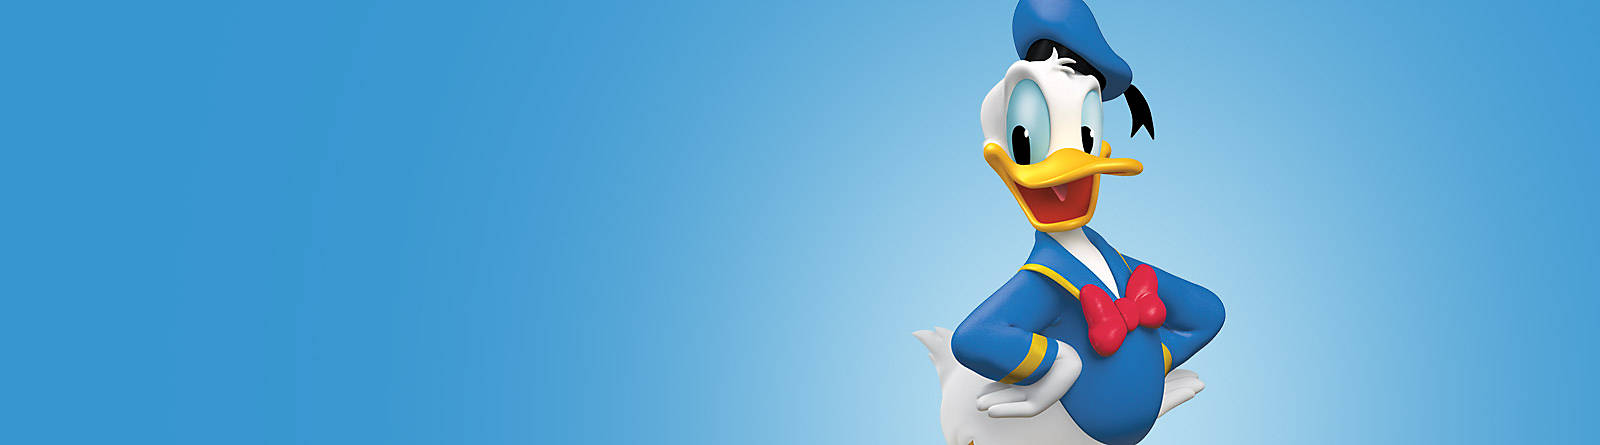 Donald Duck Discover our range of Donald Duck merchandise, including costumes, clothes, figurines, soft toys and more